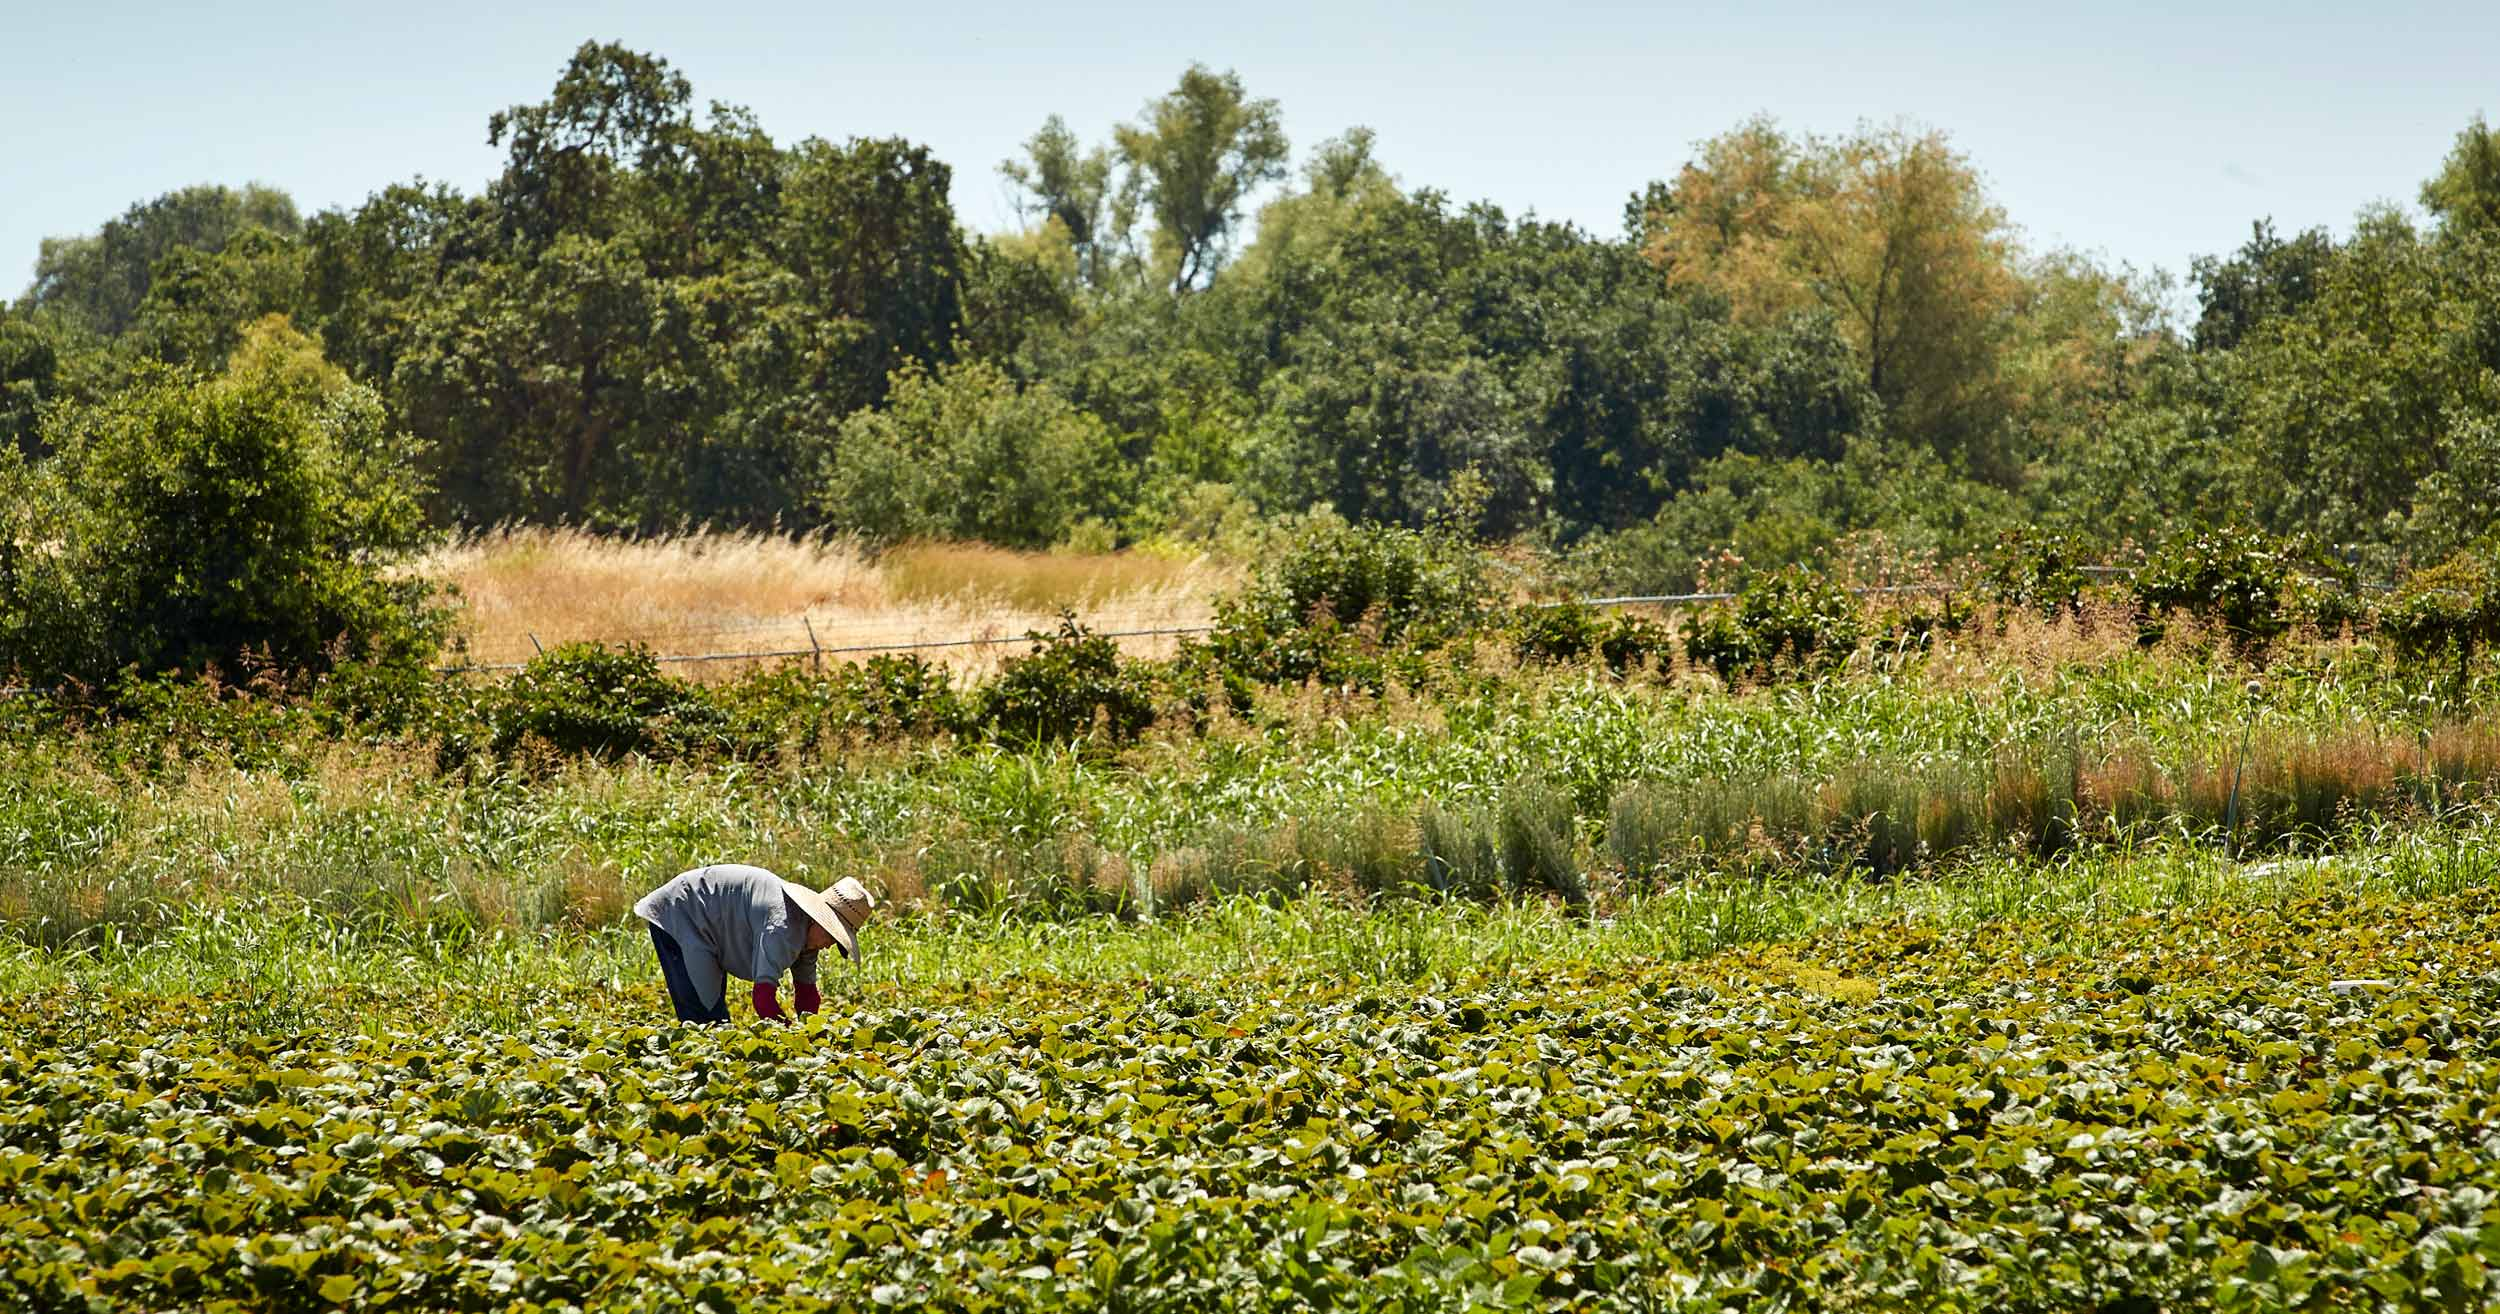 Farmer in Knights Landing